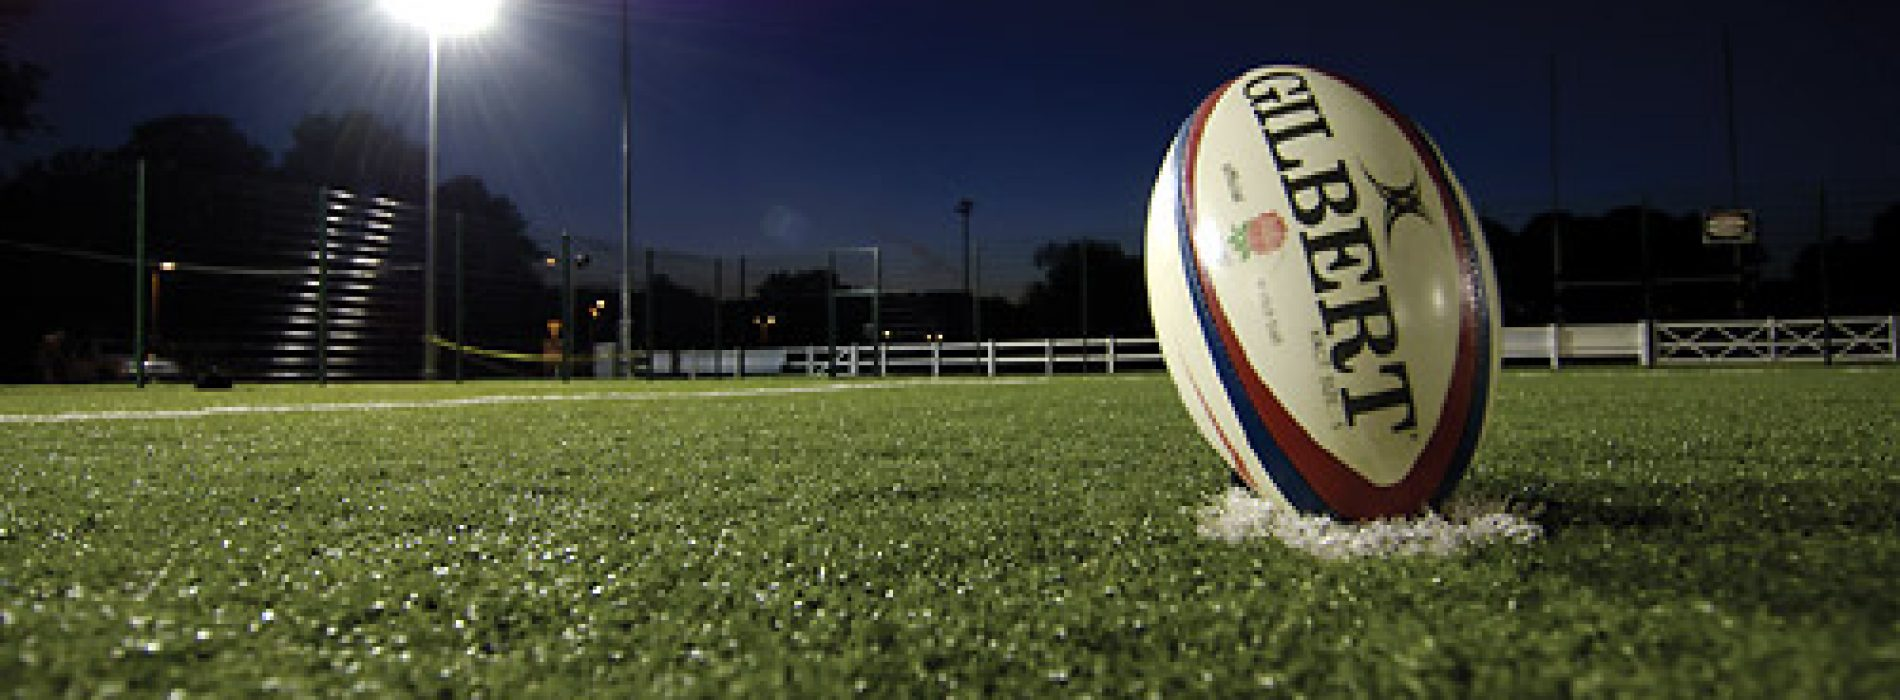 Eastern FS rugby league invites FLR